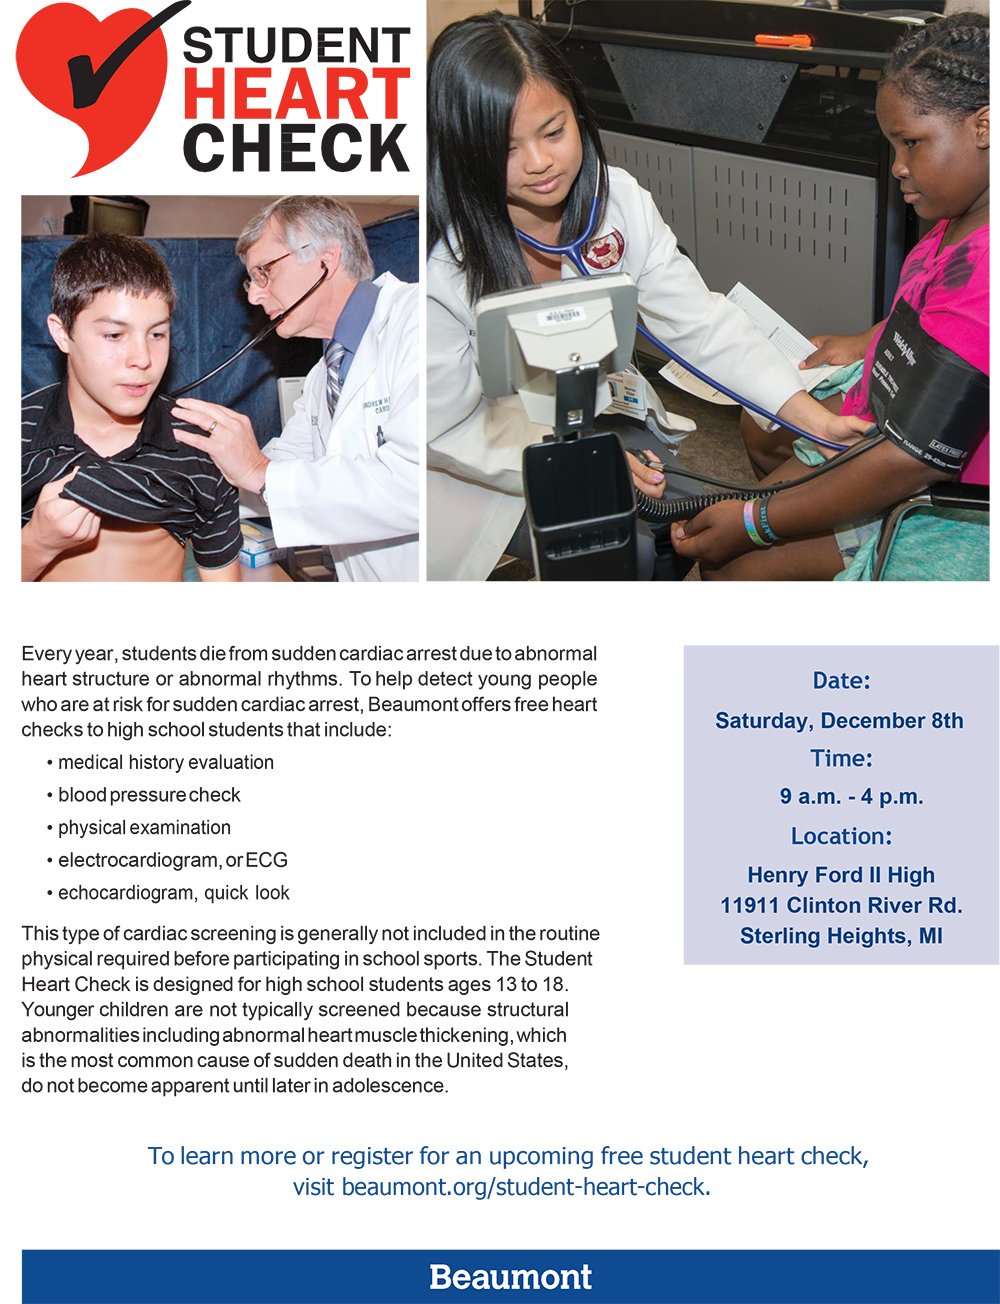 Beaumont Student Heart Check: December 8